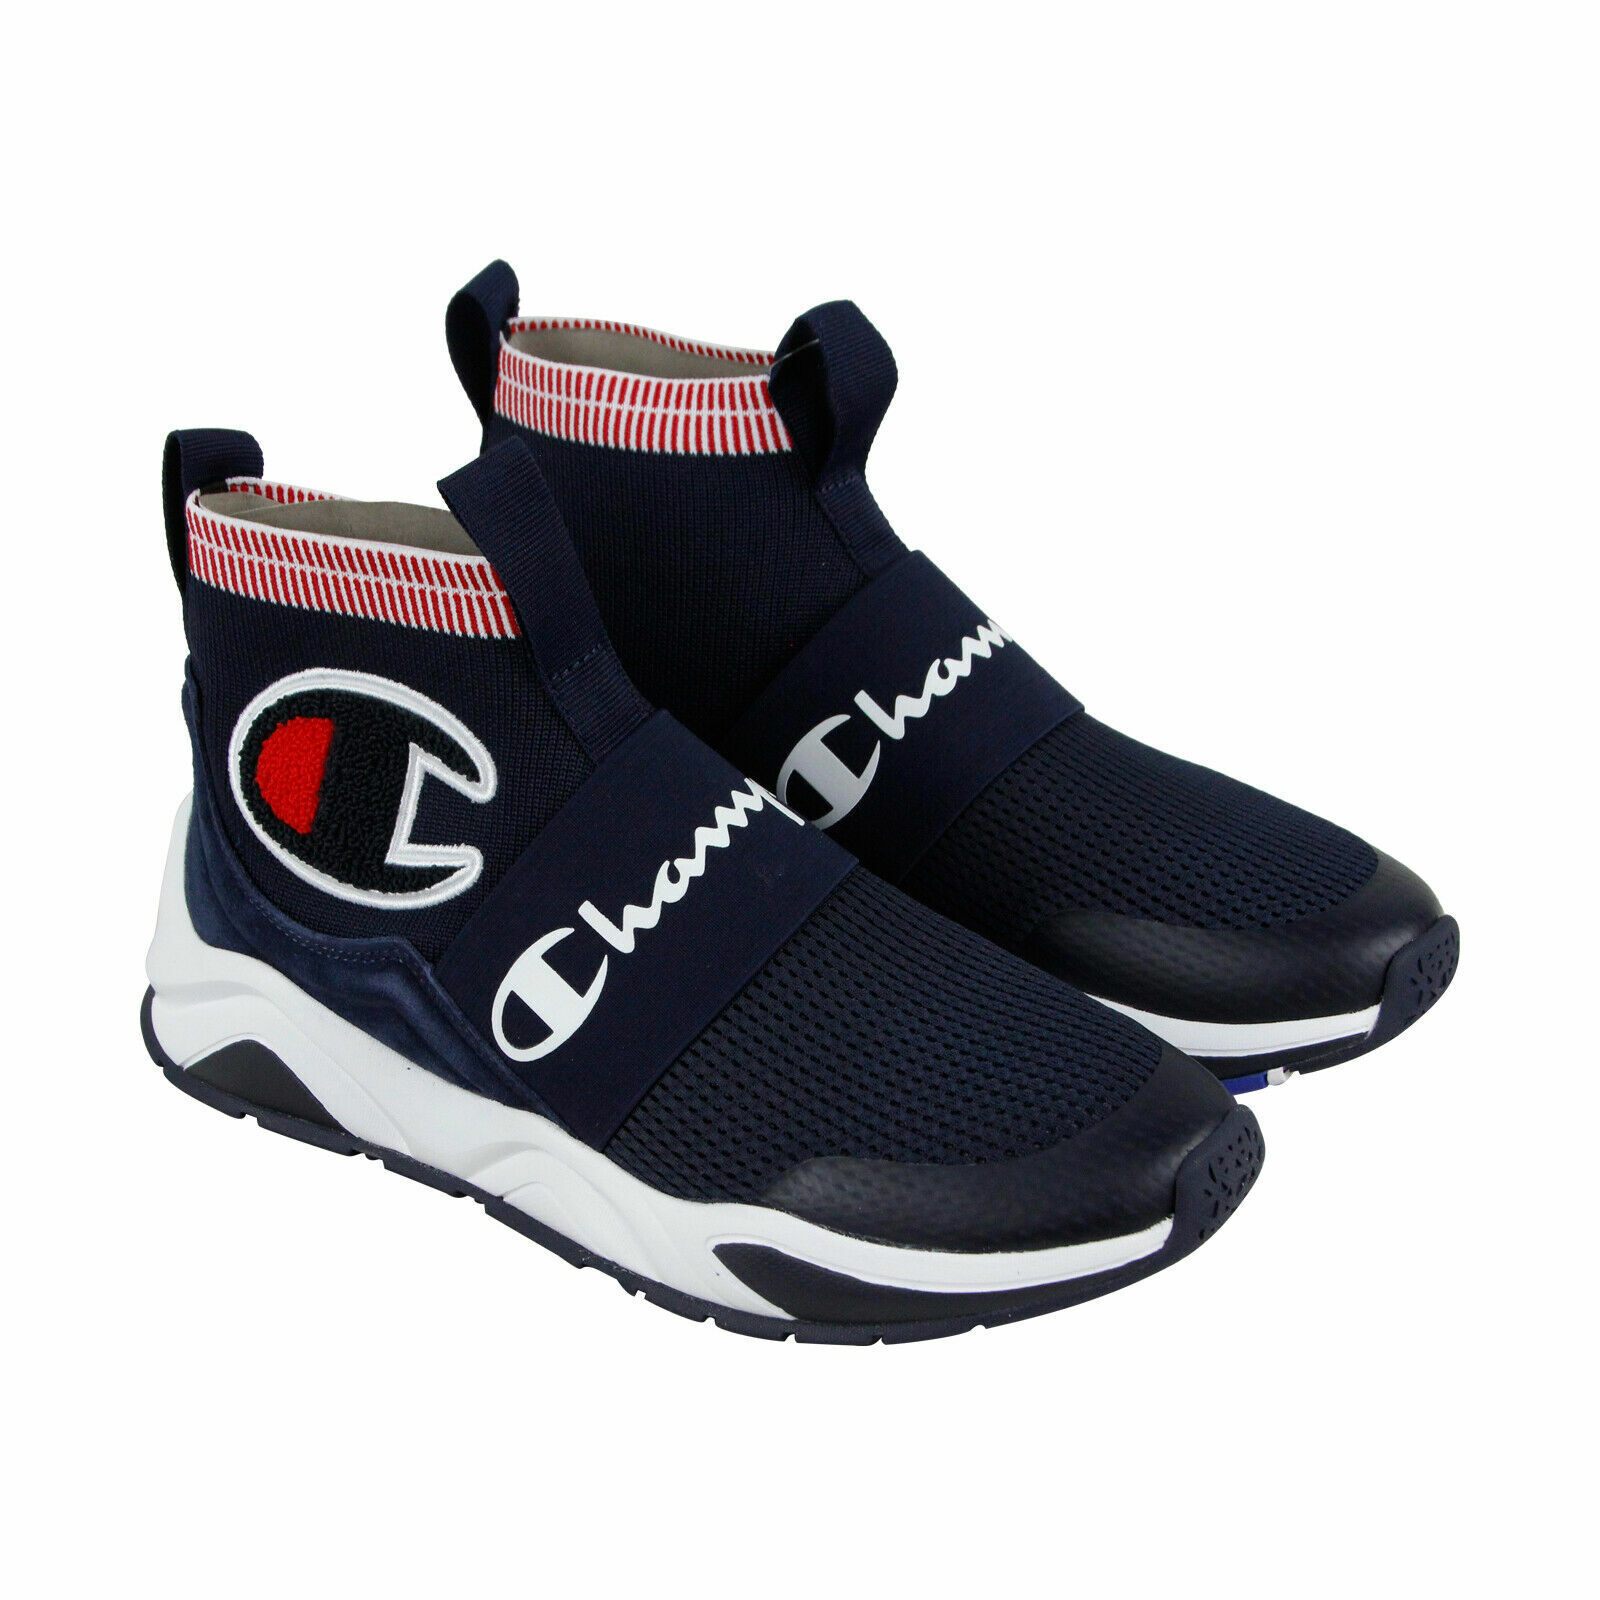 Mens Champion Rally Pro Men's Sneakers Lifestyle Shoes Sport